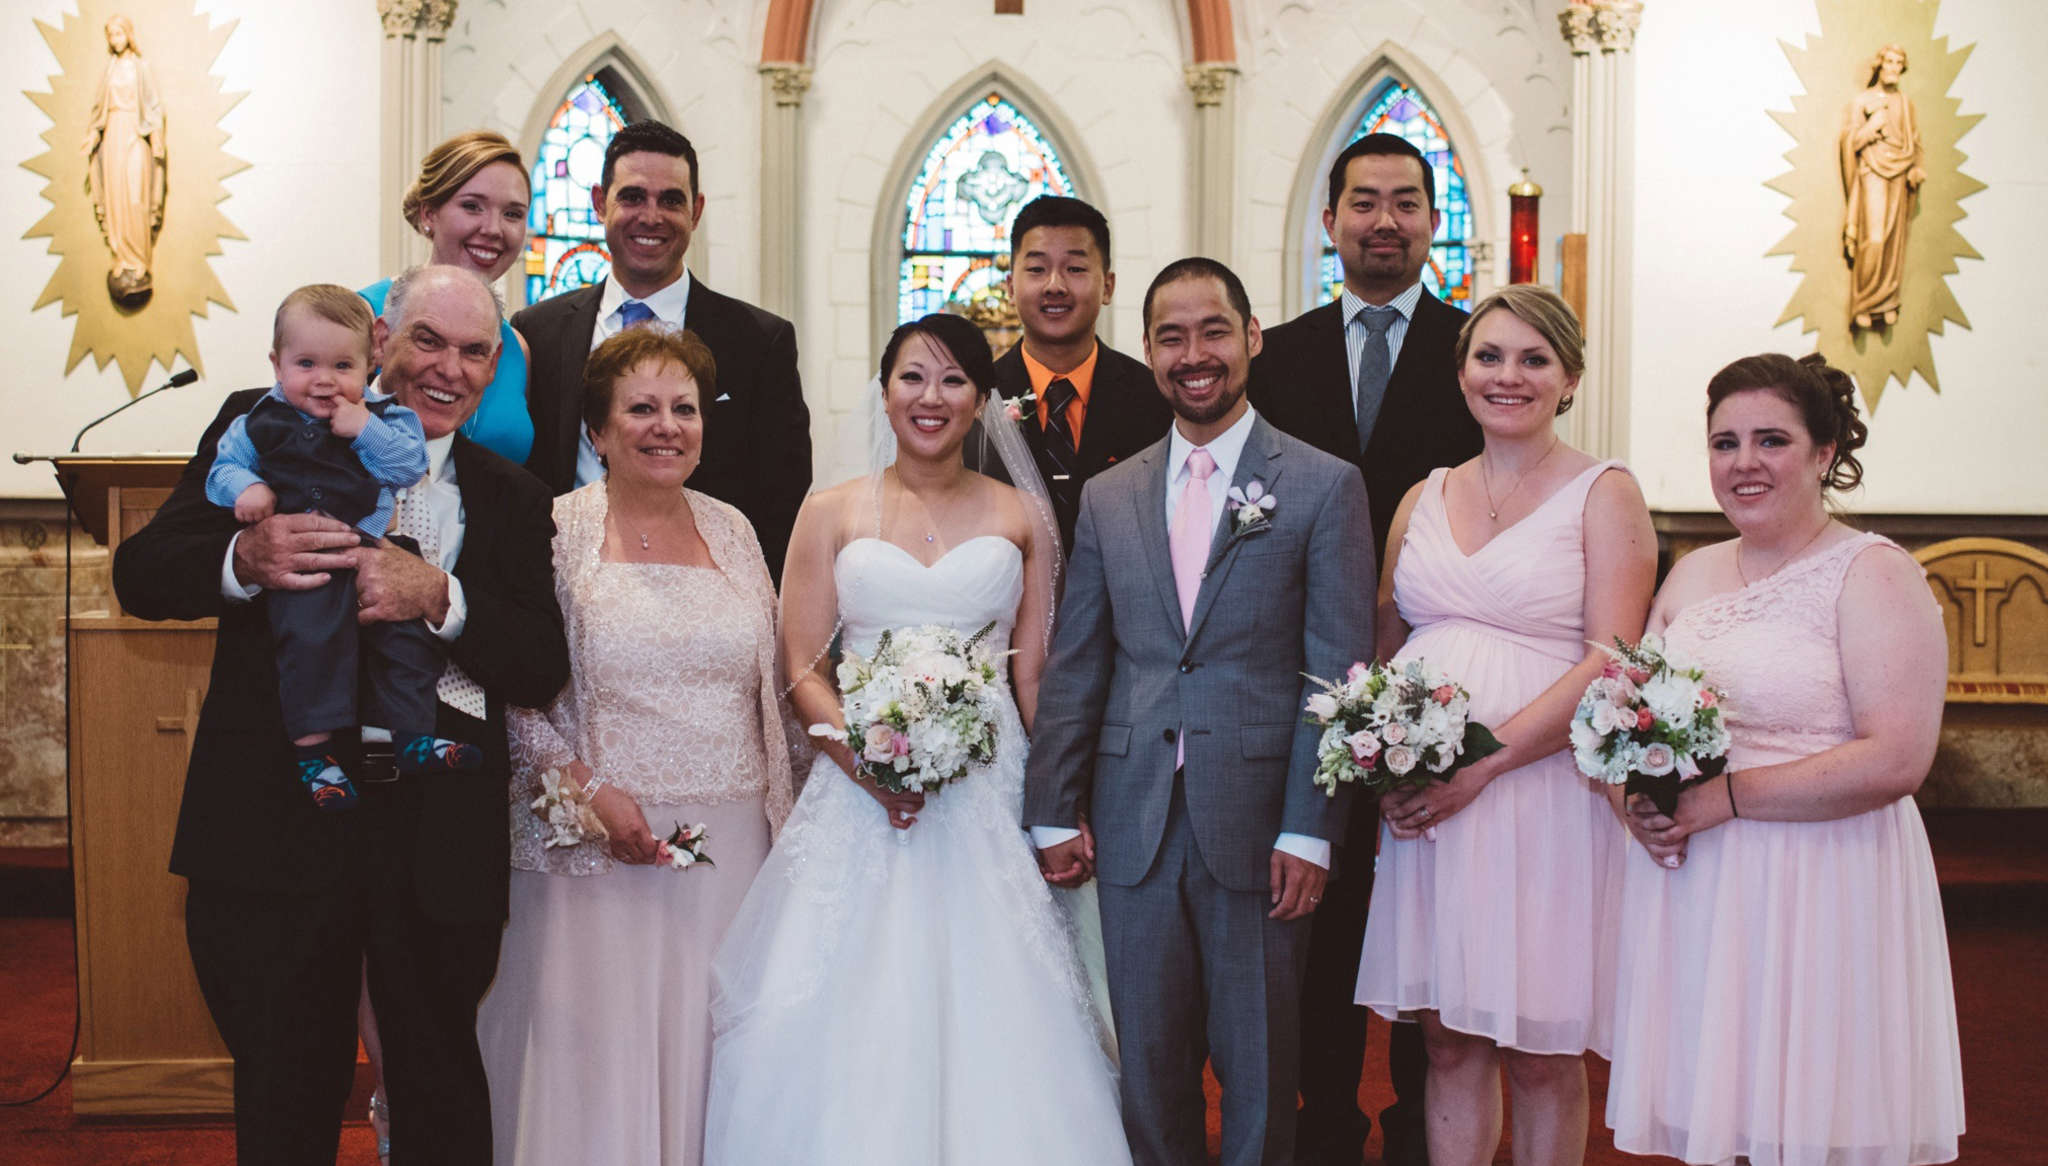 Elisabeth McPeak and Arthur Sato with their families.